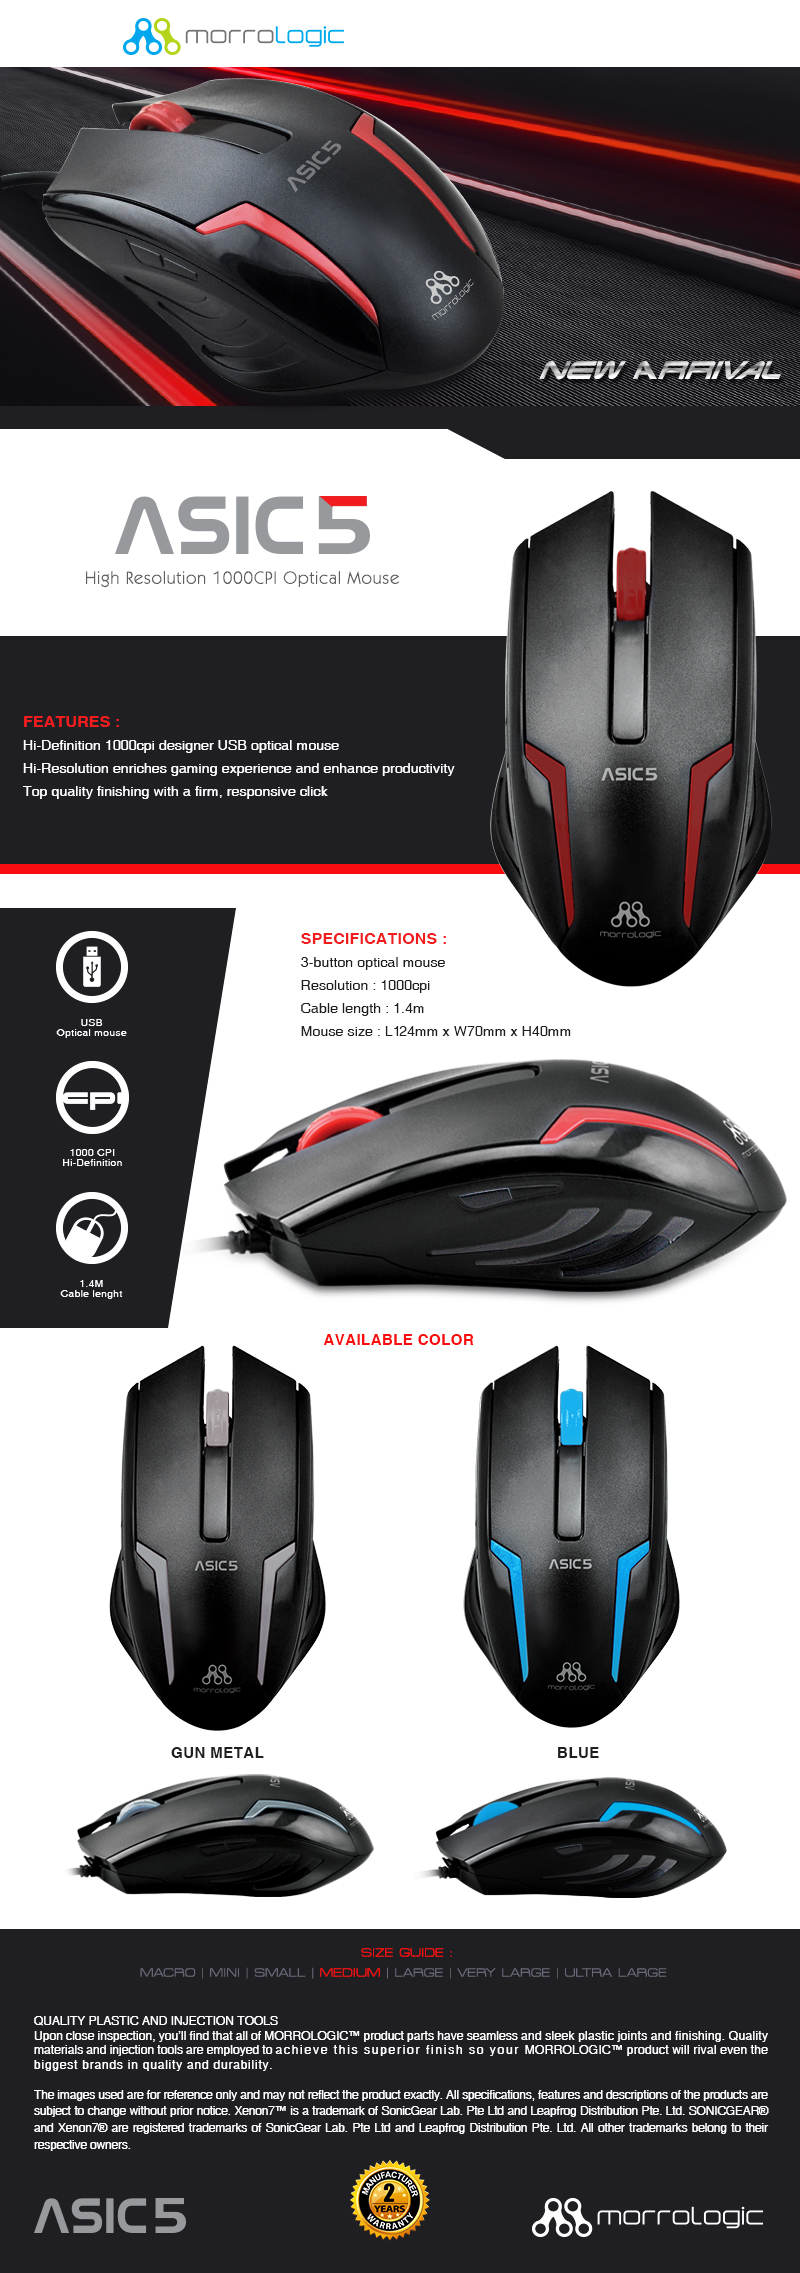 Every Need Want Day Mouse Alcatroz Lithium L2 Asic 5 Series